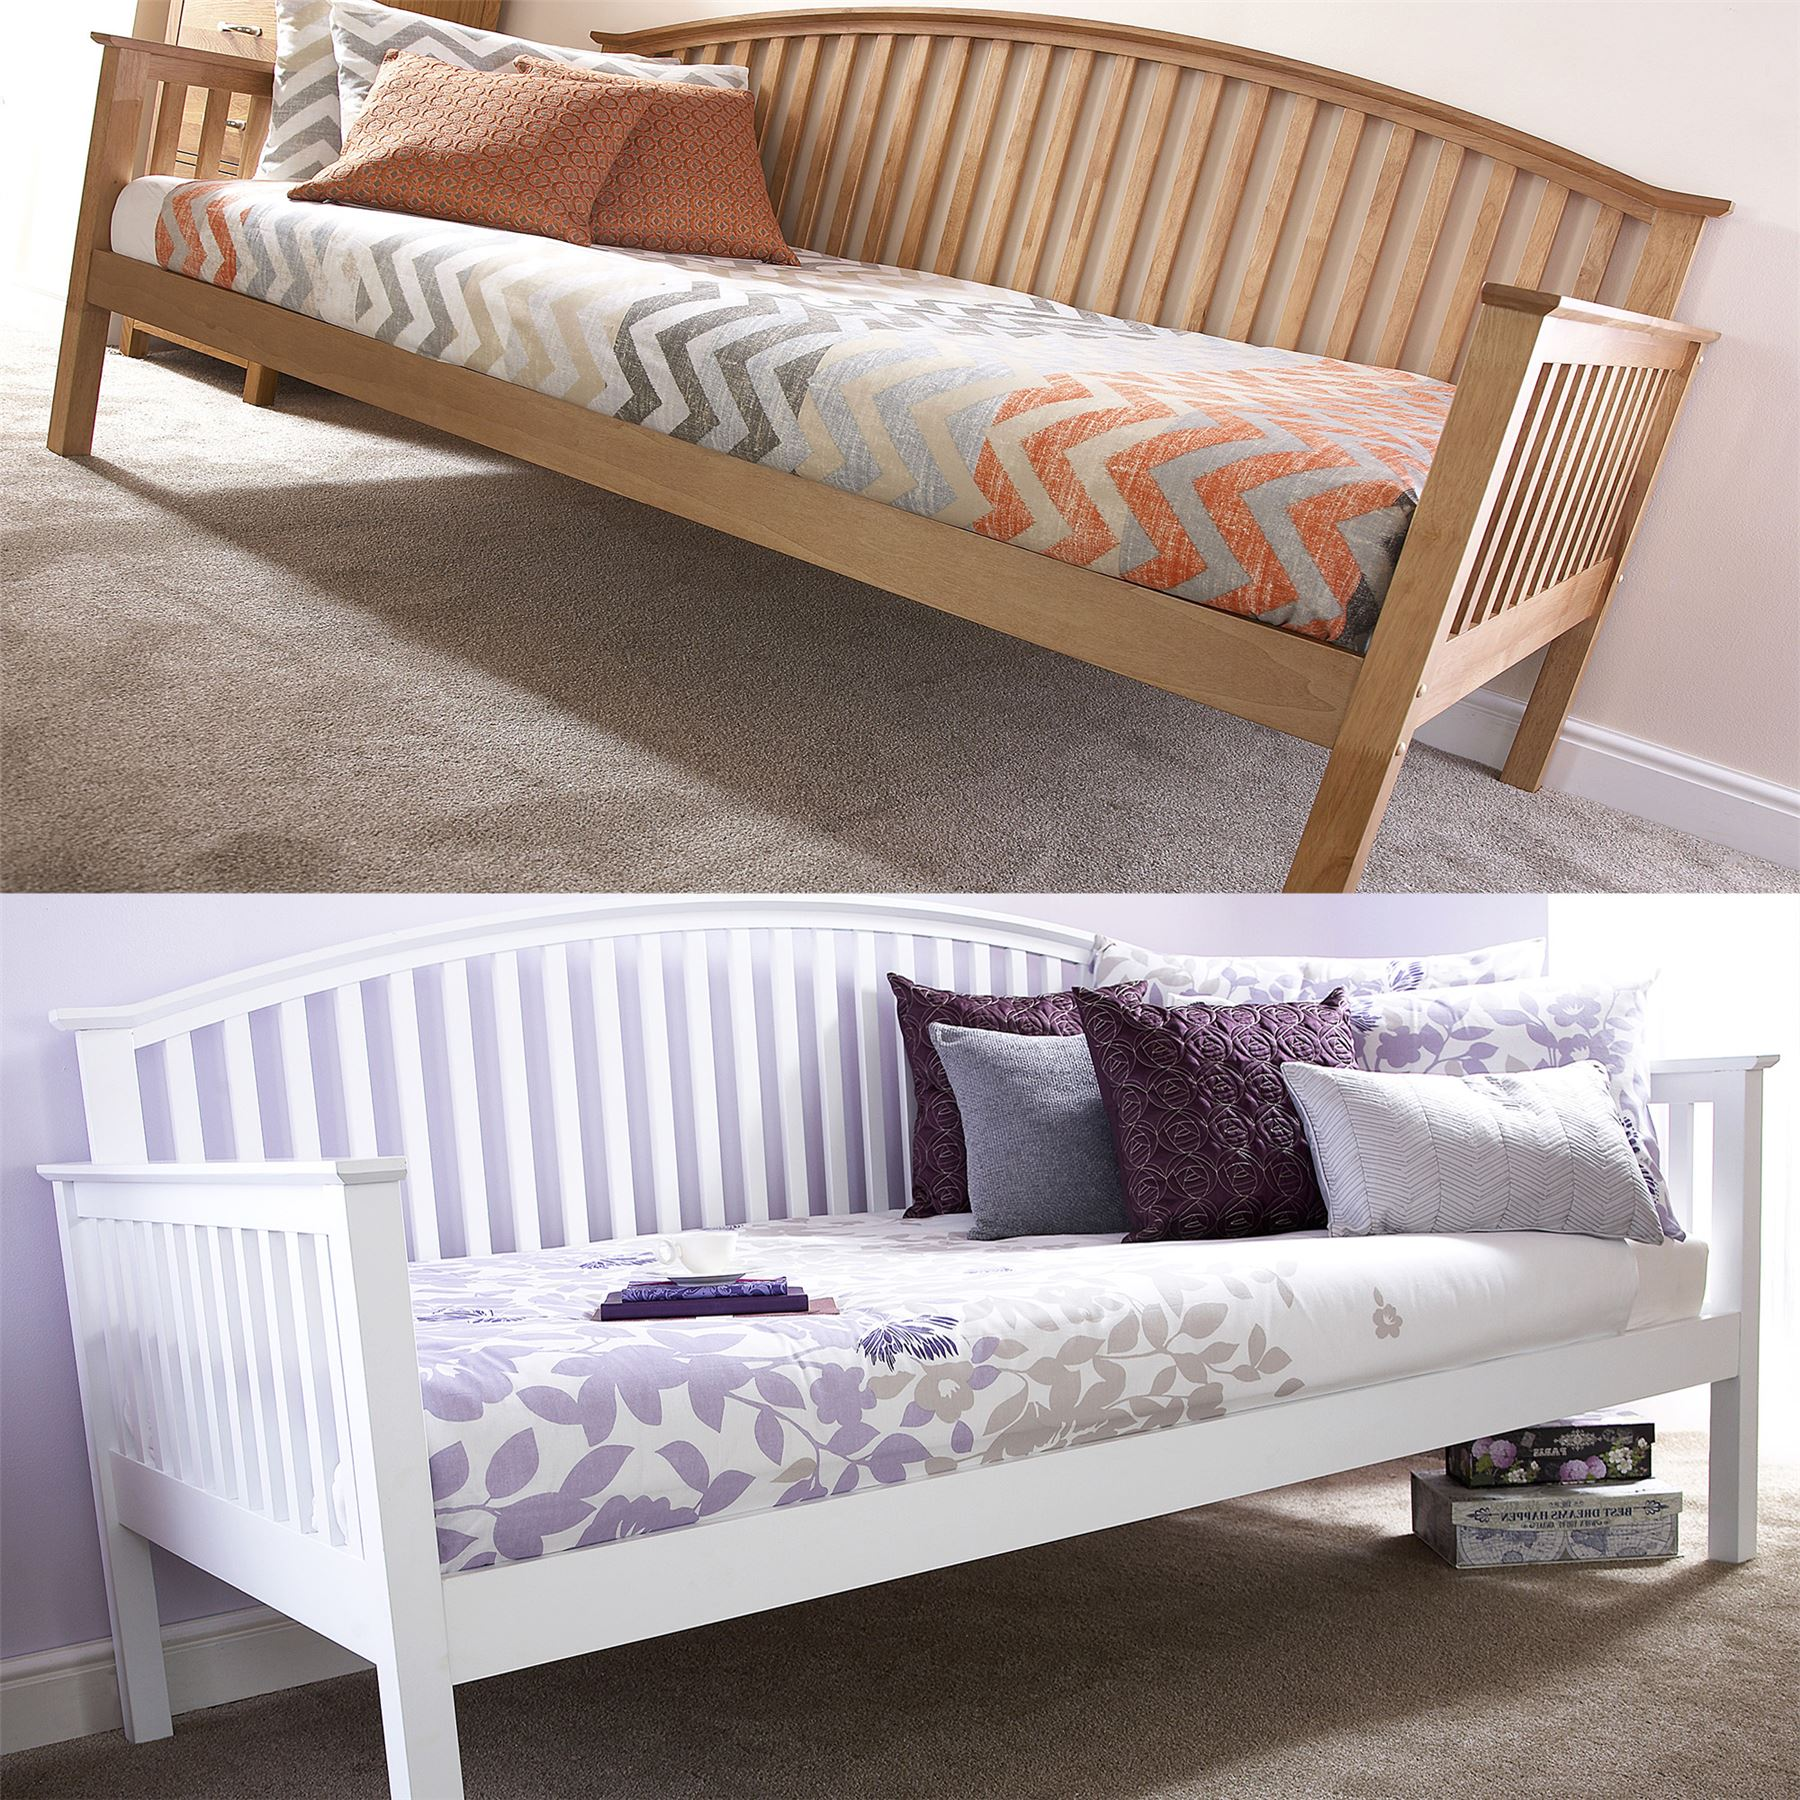 Madrid Wooden 3ft Single Day Bed Frame Amp Trundle Guest